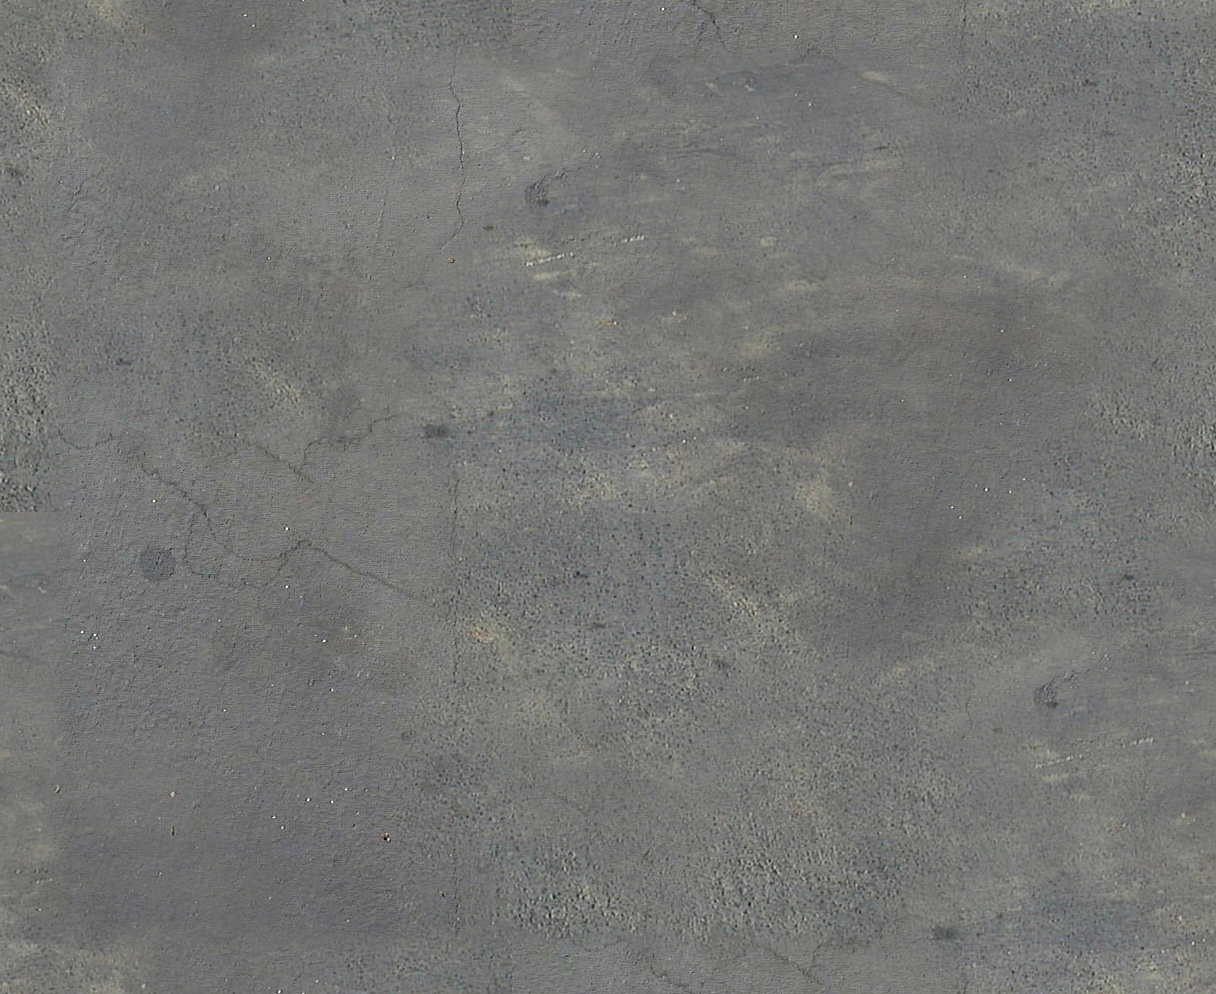 Waxed concrete texture concrete pinterest texture for Polished concrete photoshop